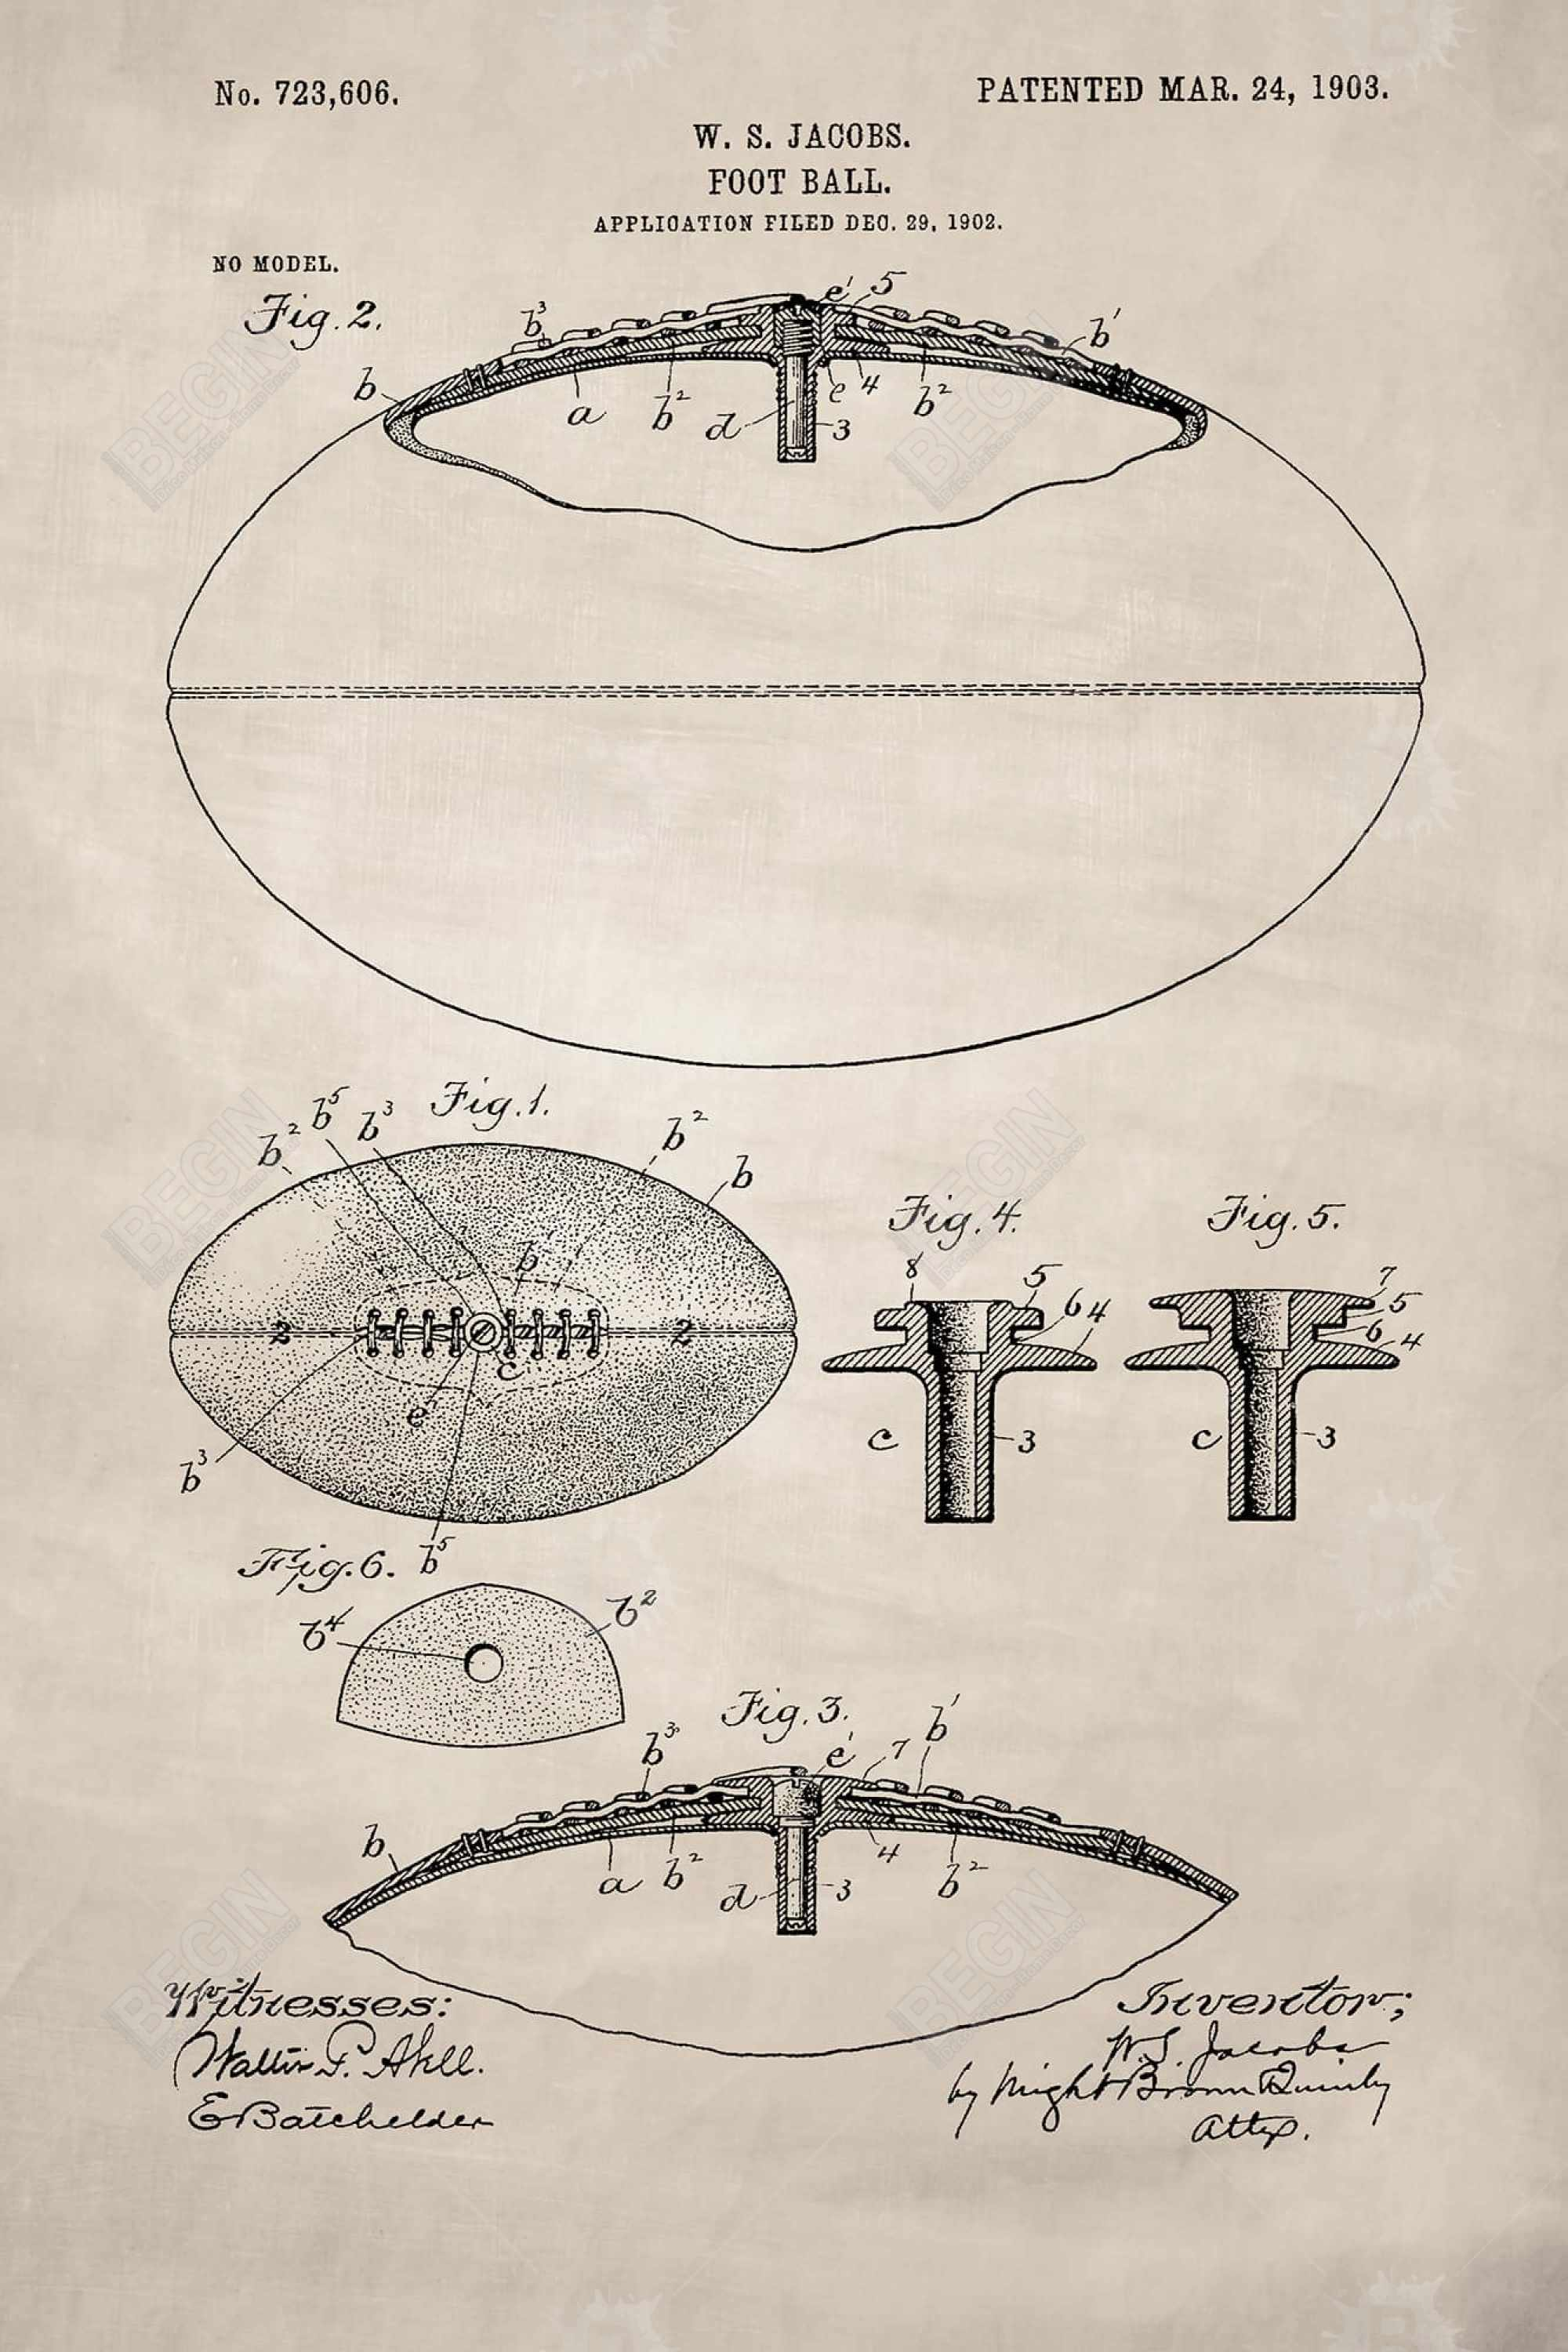 Beige blueprint of a foot ball